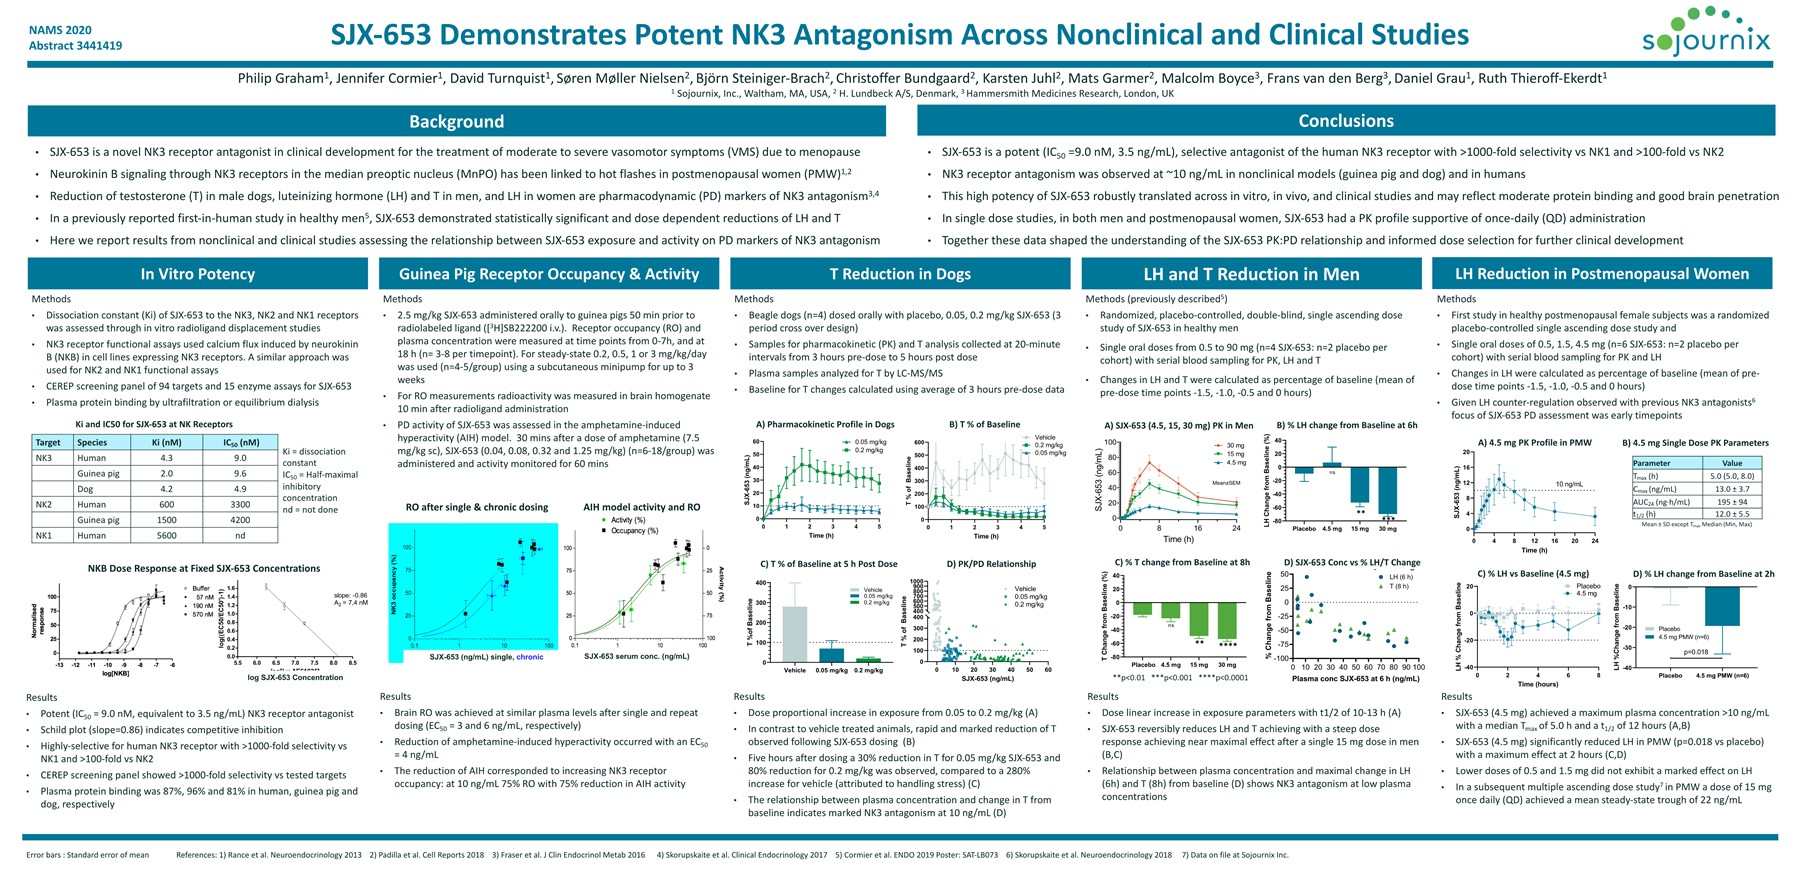 SJX-653 Demonstrates Potent NK3 Antagonism Across Nonclinical and Clinical Studies